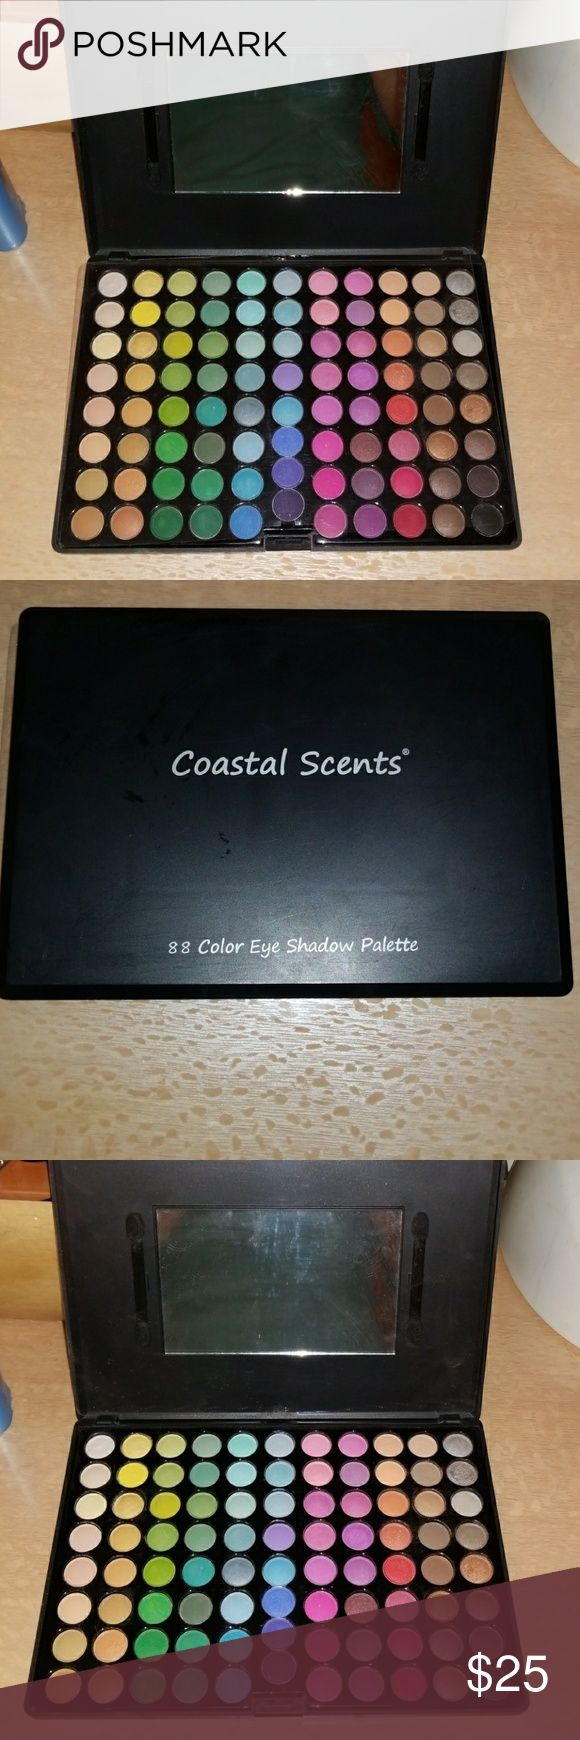 Coastal scents 88 color eye shadow palette Tried on. In excellent condition coastal scents Makeup Eyeshadow